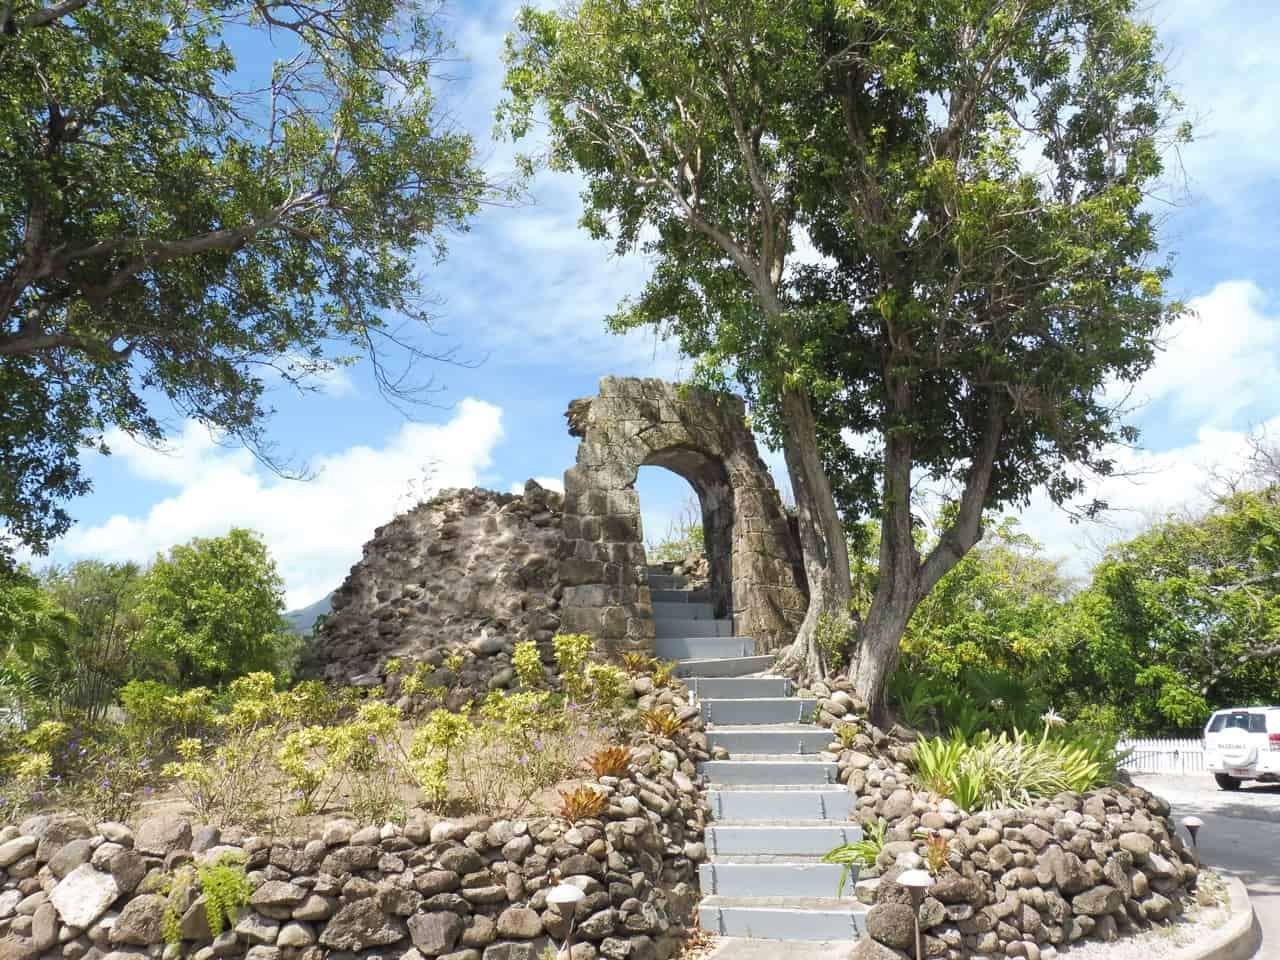 Remains of a sugar mill on the island of Nevis.